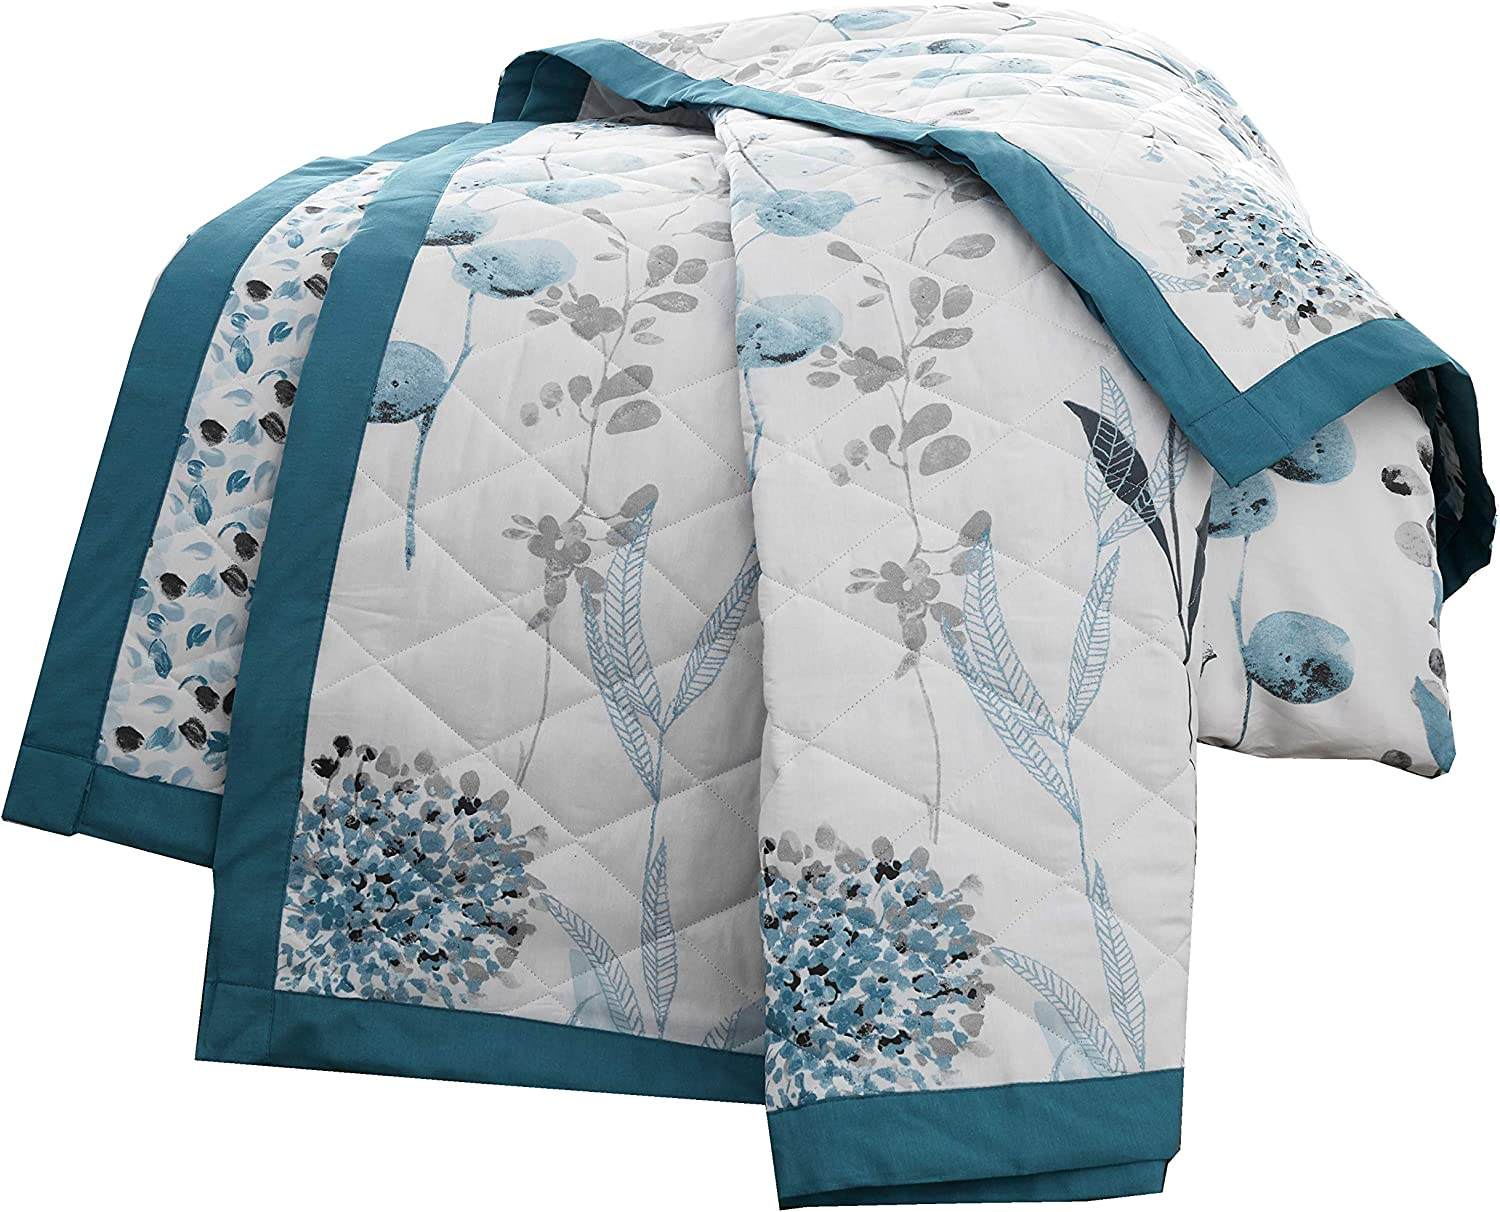 Lancashire Bedding Inky Floral Bedspread in Royal Blue